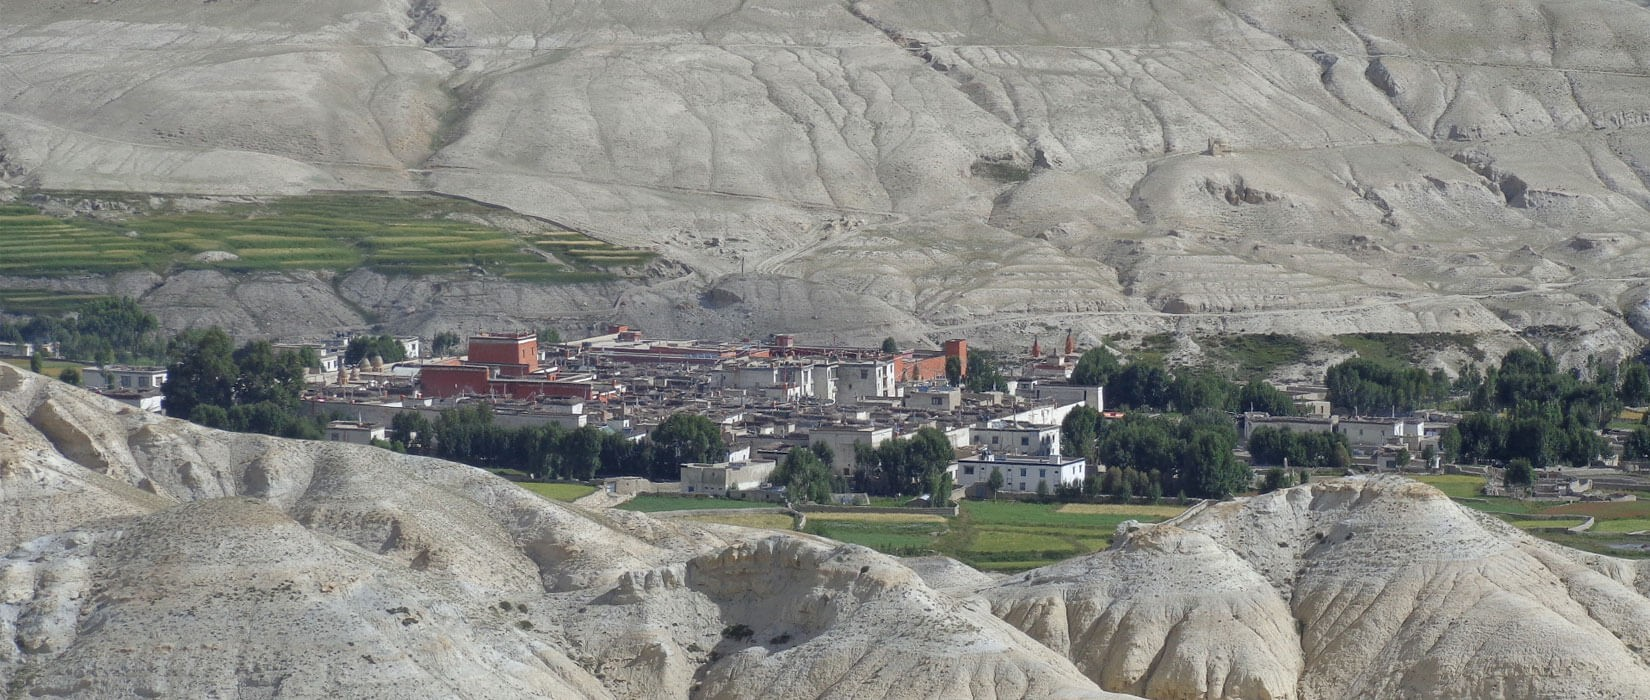 Lo-Manthang, Capital of Upper Mustang